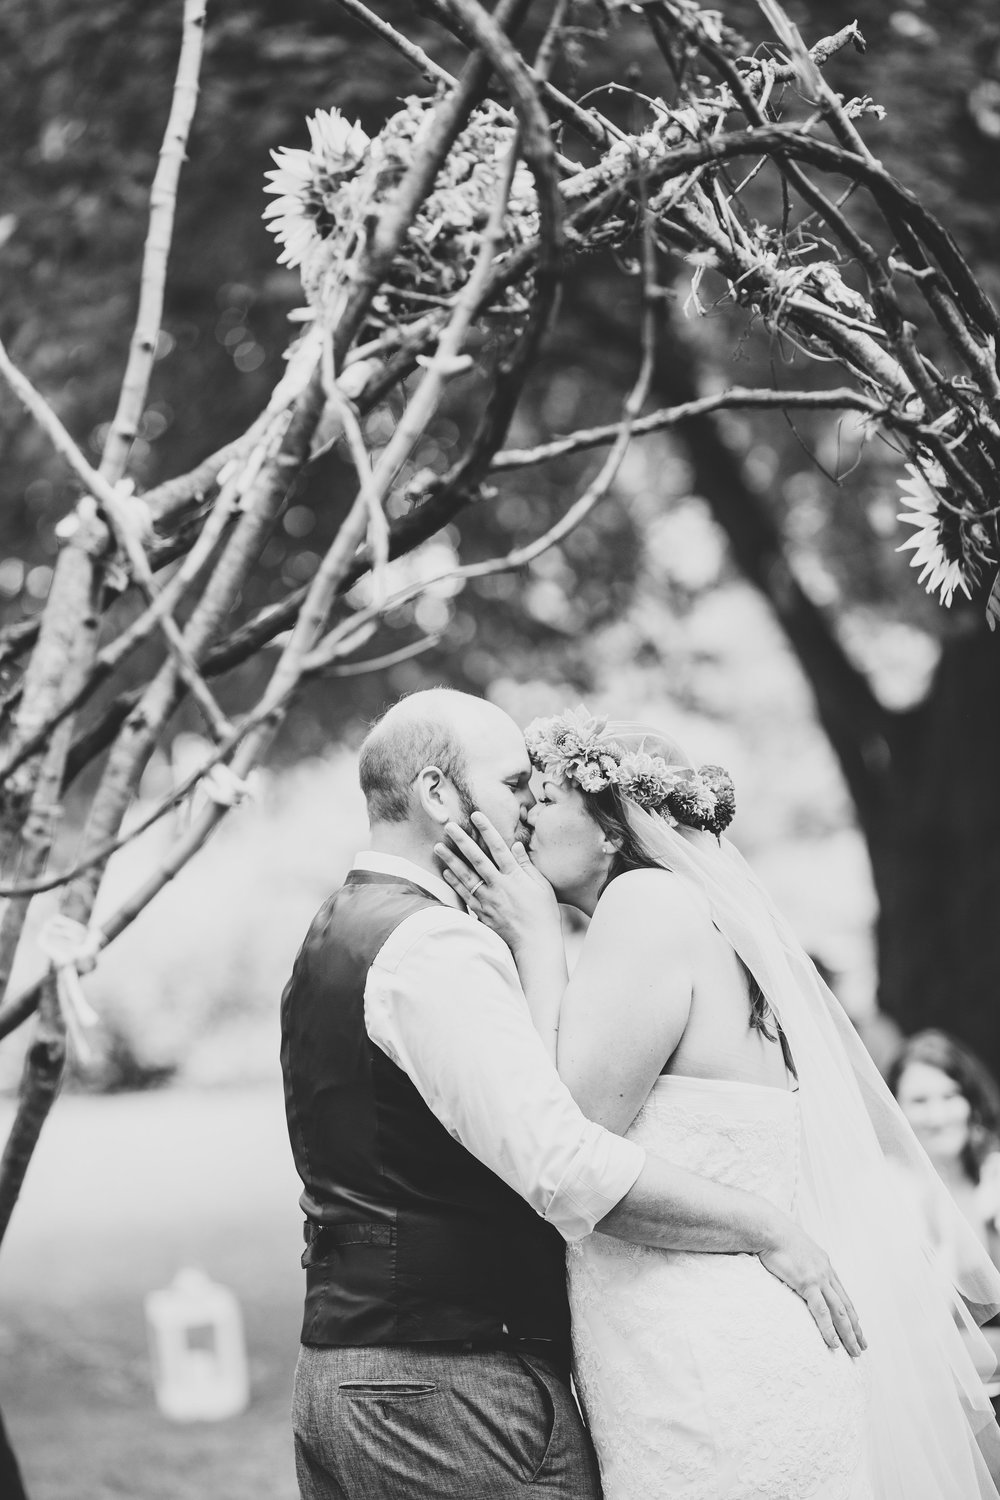 ithaca-new-york-bride-groom-first-kiss-black-white-tr